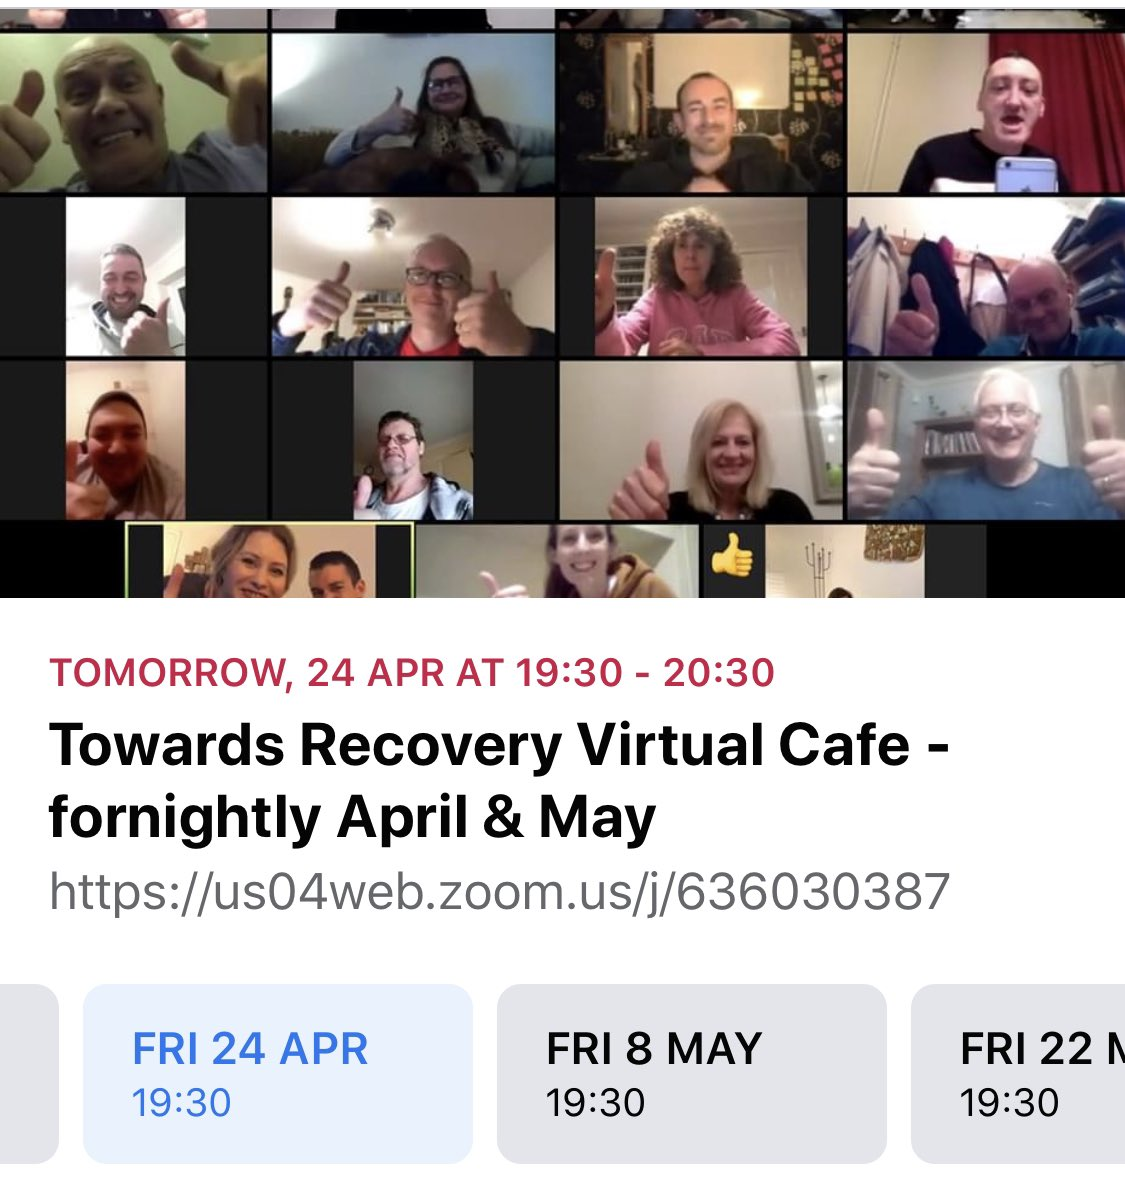 Thank you @T0wardsRecovery Brilliant meeting really enjoyed it. Thank you @owenbaily1982 for sharing your journey it was great to listen so many similarities and was great to hear how you dealt with everything. Thank you again all I will be back ❤️⬇️#recovery #RecoveryPosse https://t.co/f1aOXZaXsF